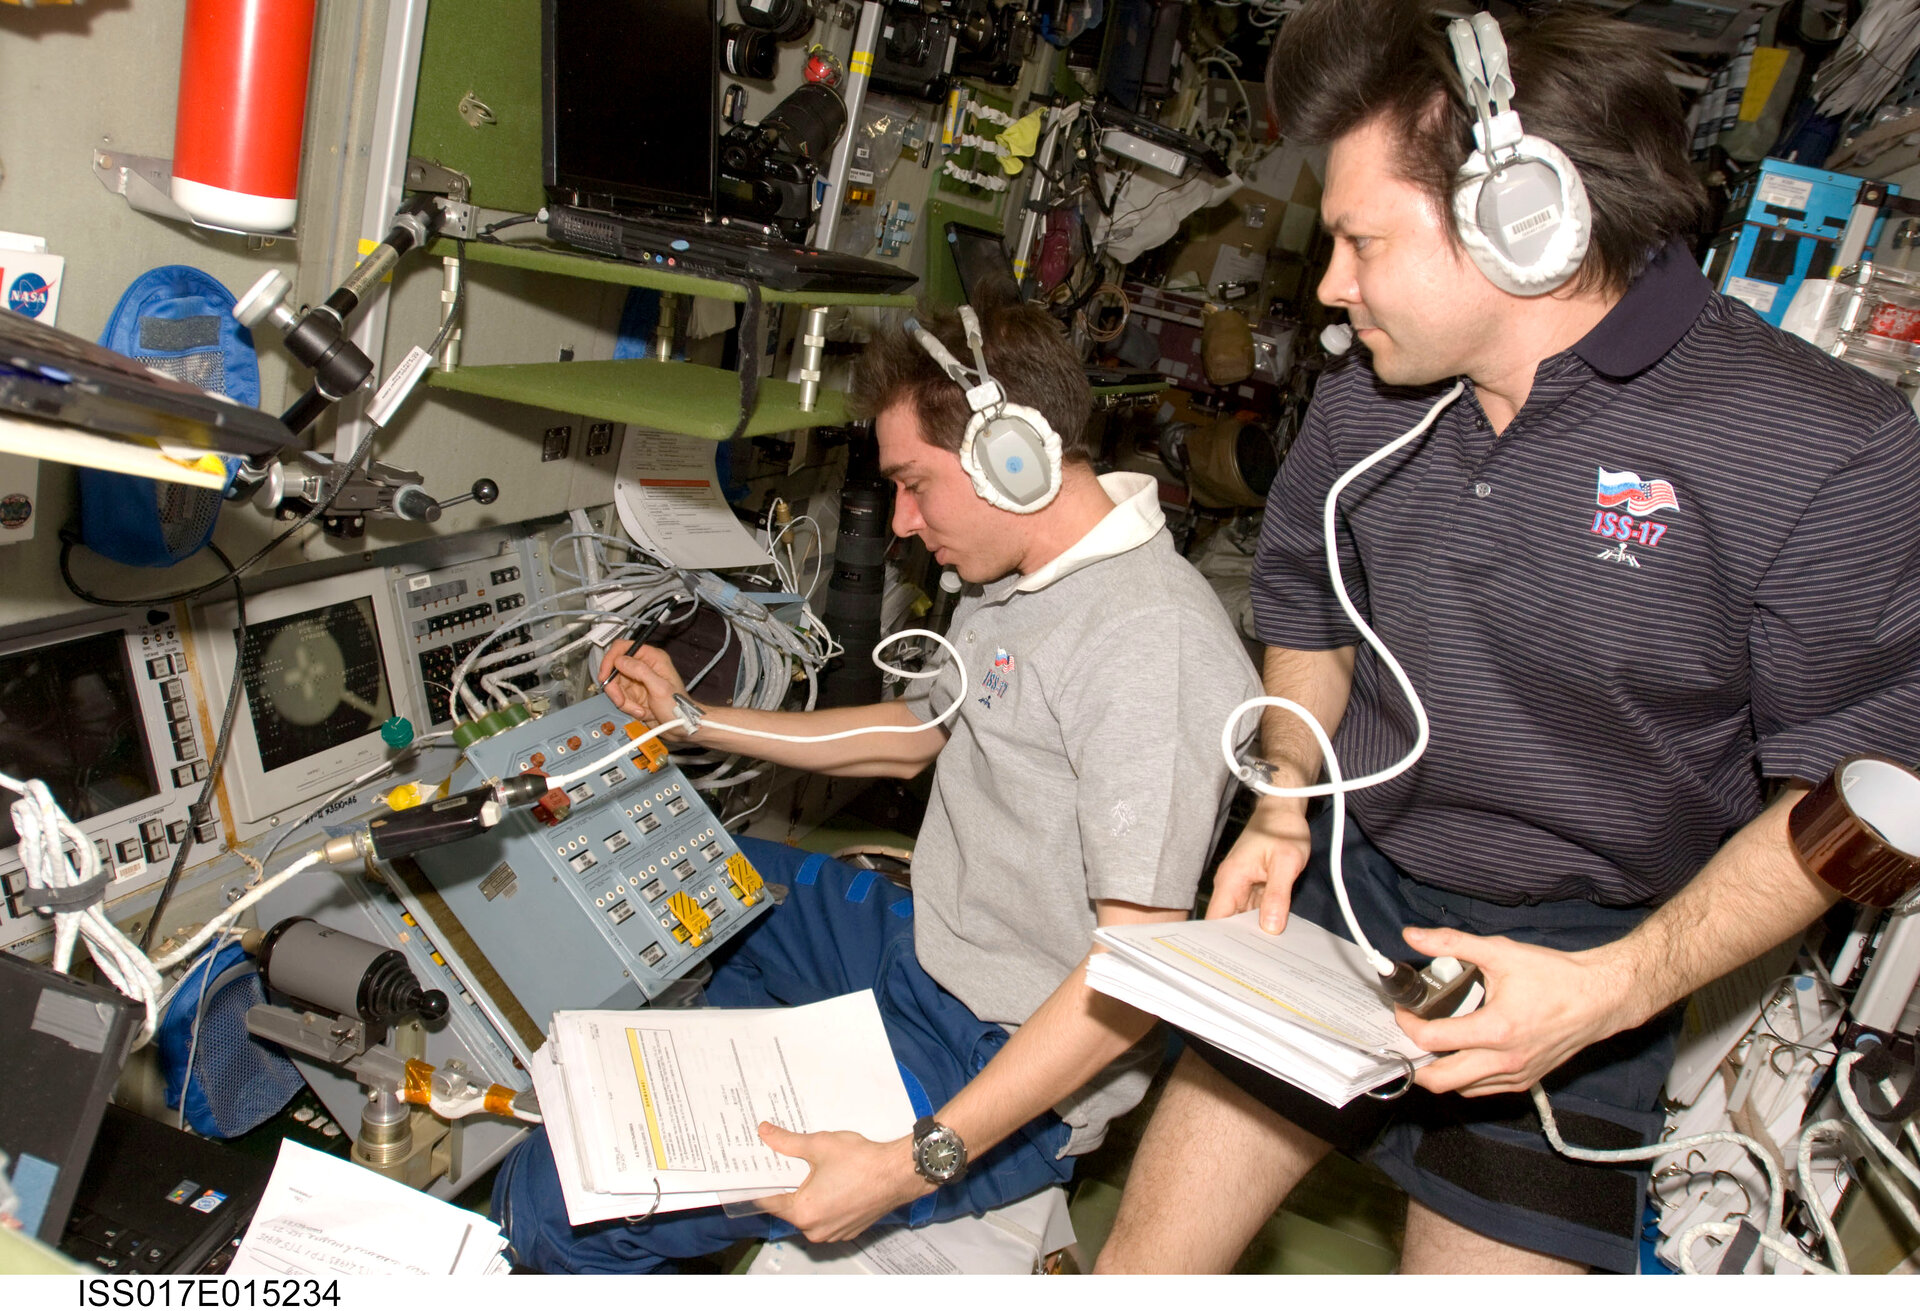 Space Station crewmembers prepare for undocking of Jules Verne ATV